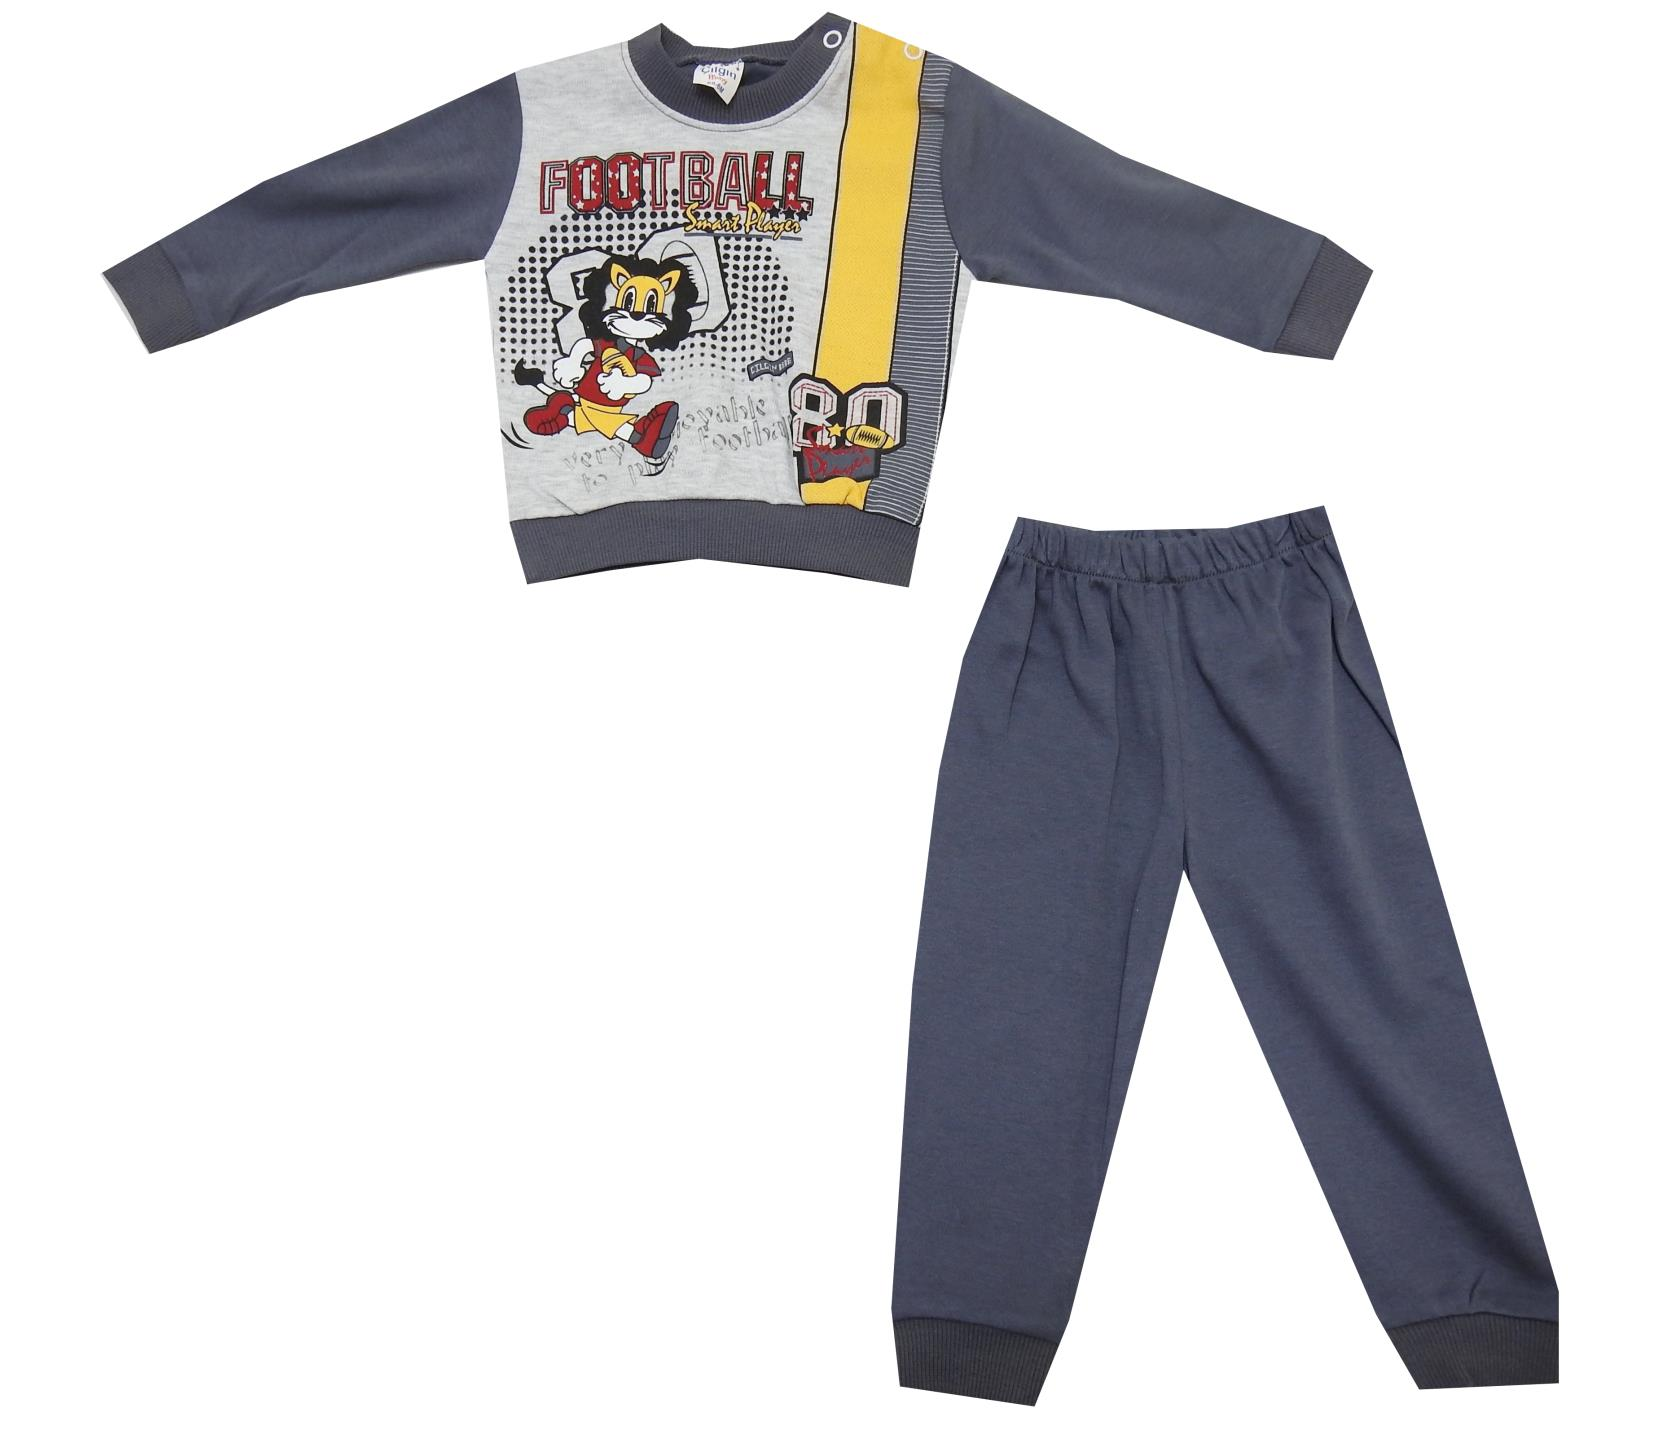 LION PRINTED DESIGN DOUBLE SET FOR BOY (6-9-12 MONTH)